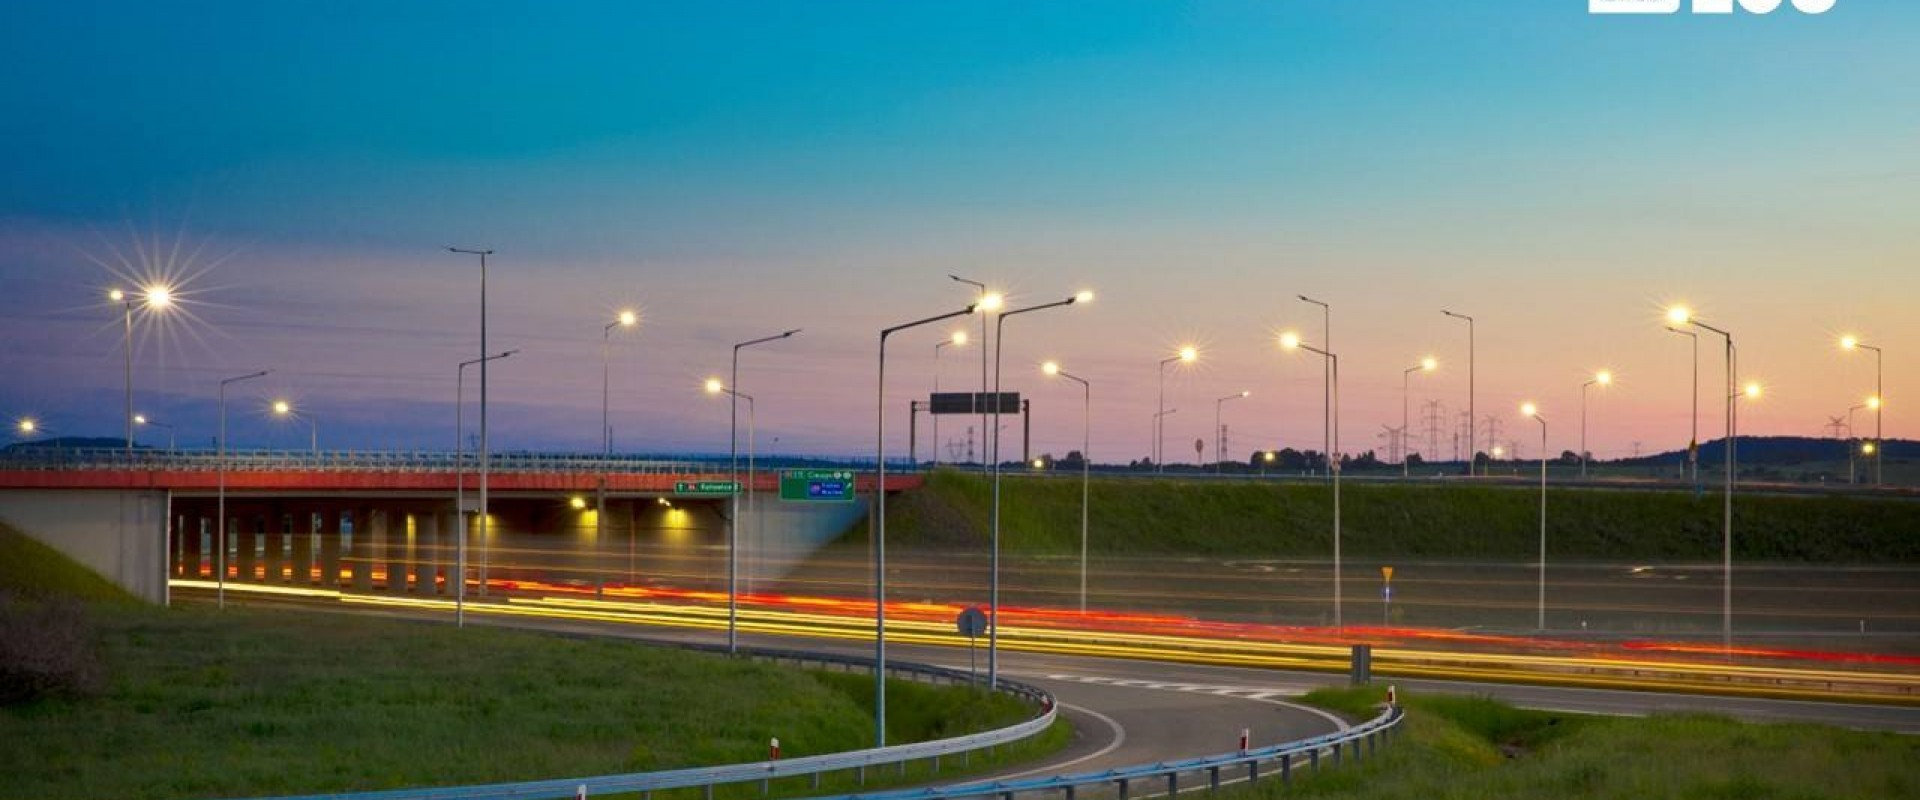 INNOVATIVE LIGHTING FOR SMART CITIES